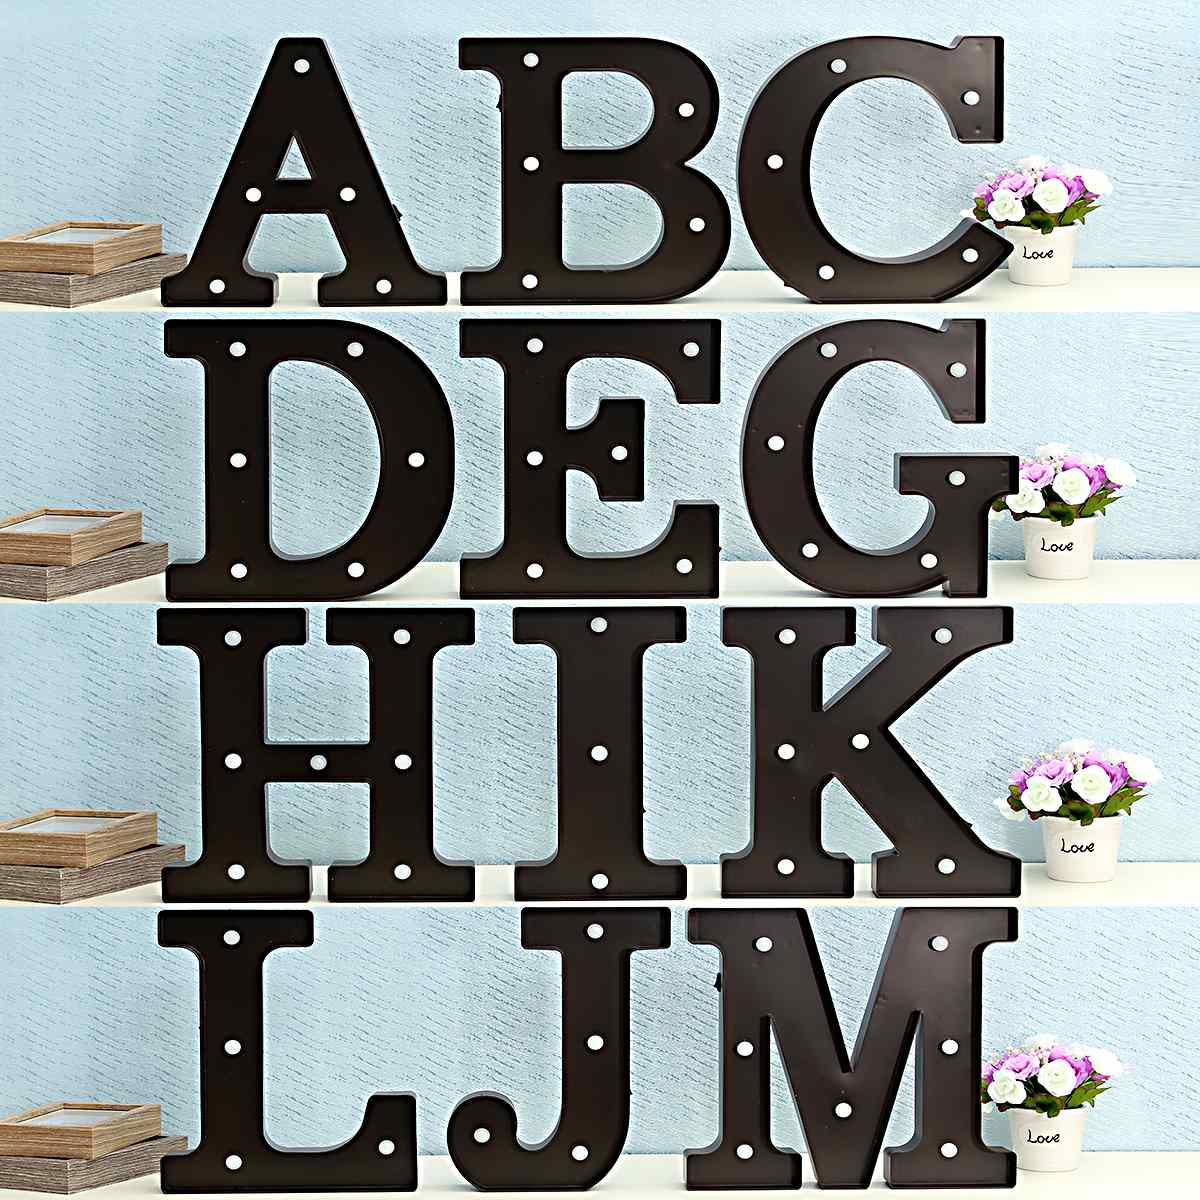 led night light lamp kids marquee letter light vintage alphabet circus style light up christmas decor - Marquee Letter Lights